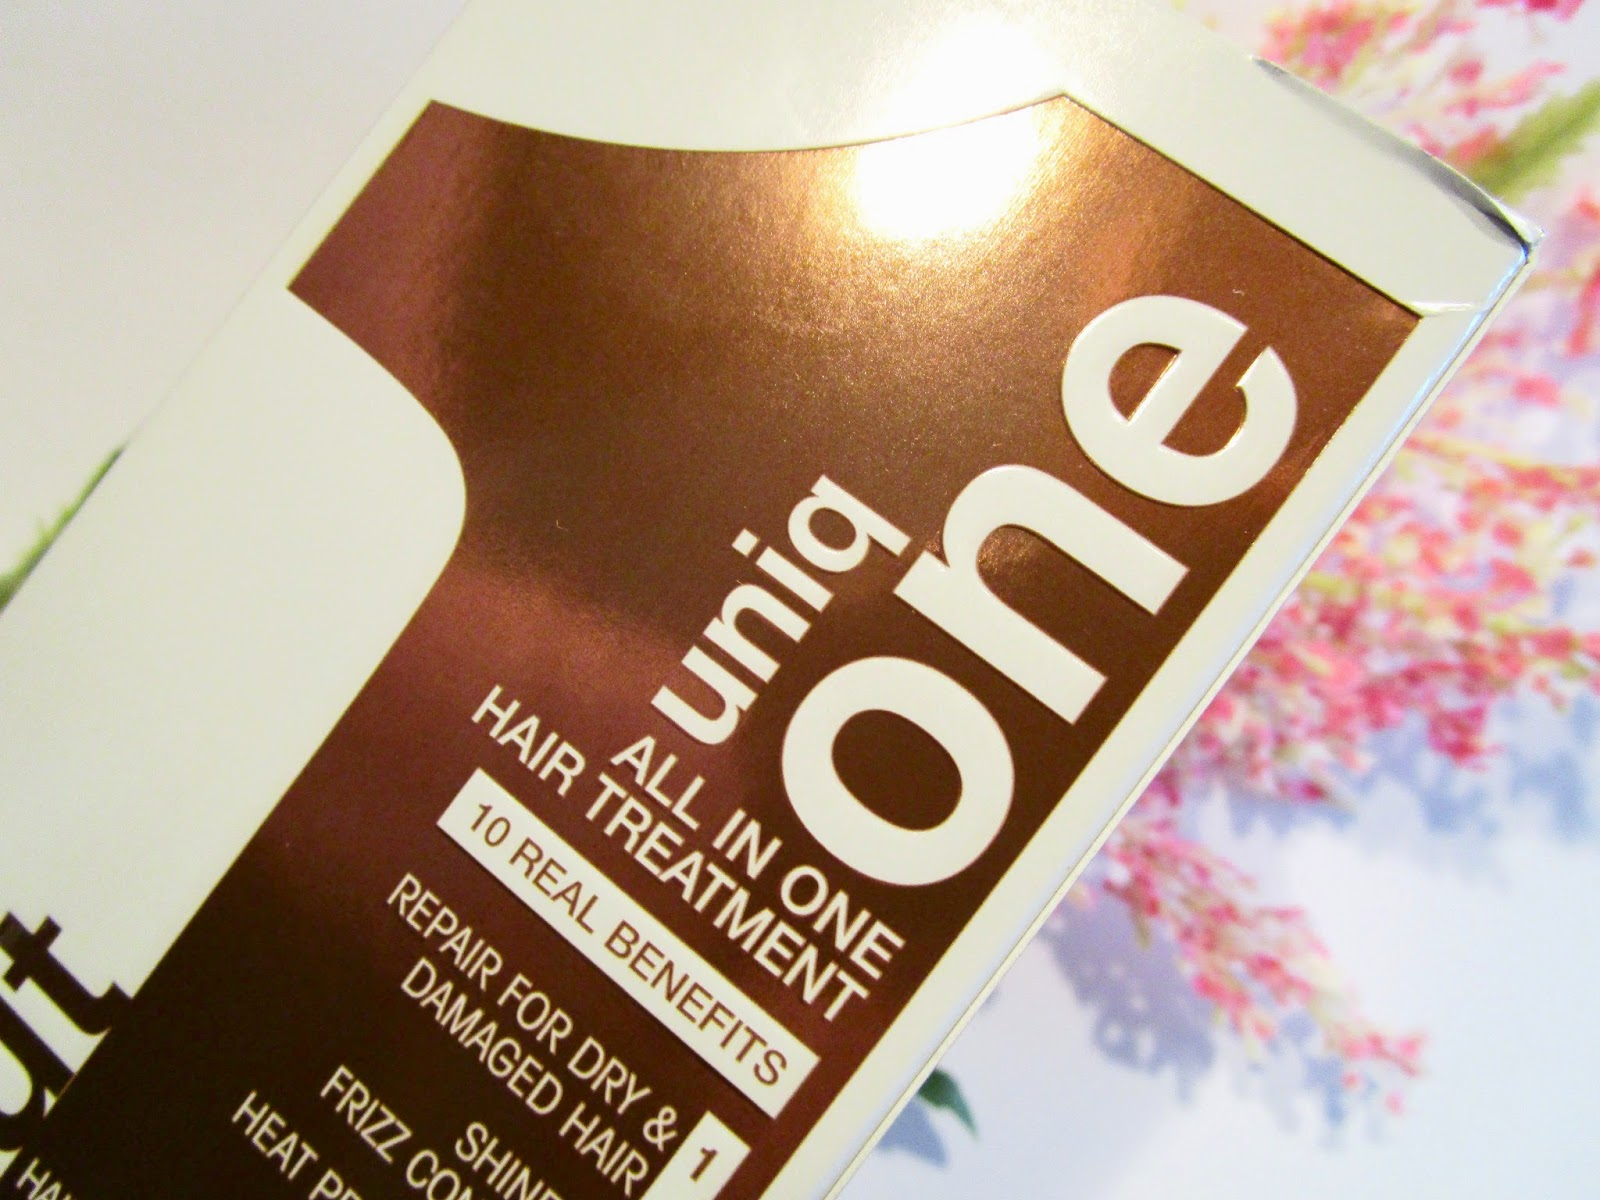 Uniq One Coconut Revlon Perfume´s Club